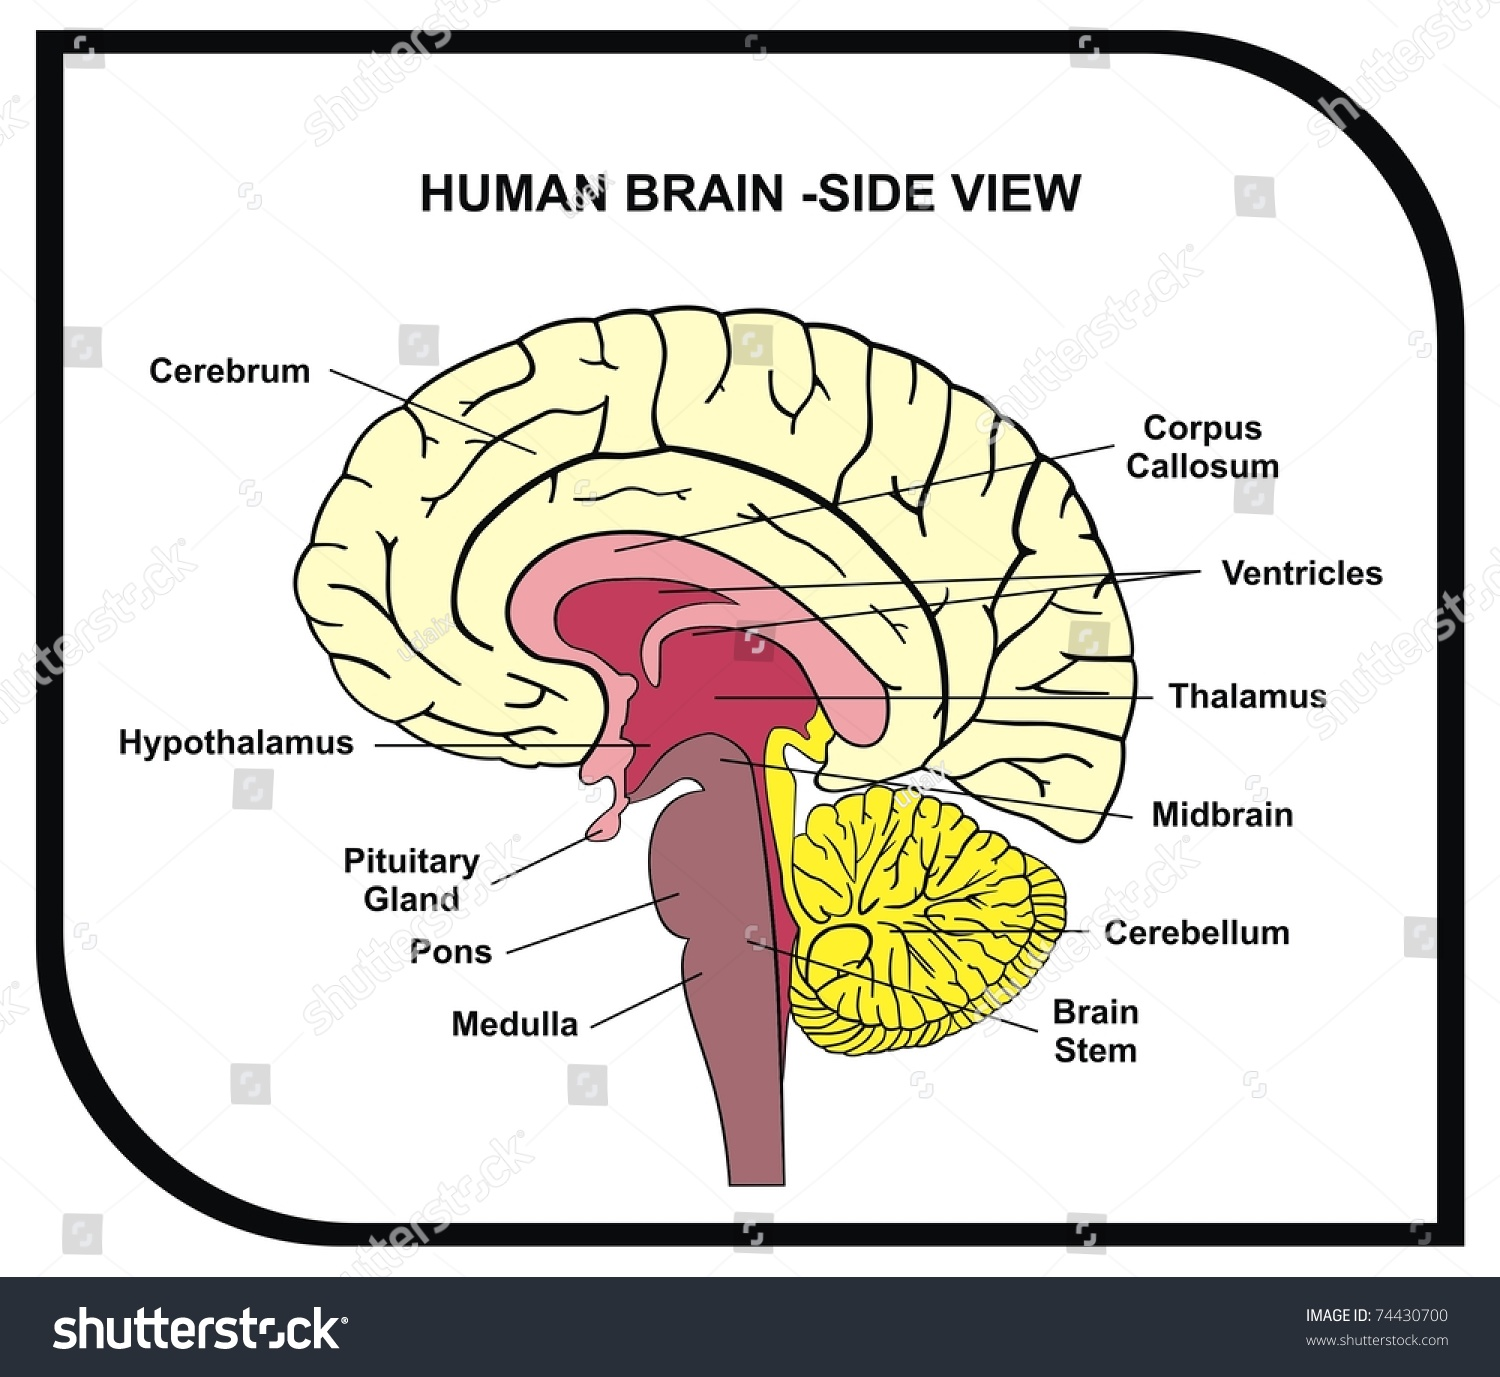 vector human brain diagram side view stock vector (royalty free